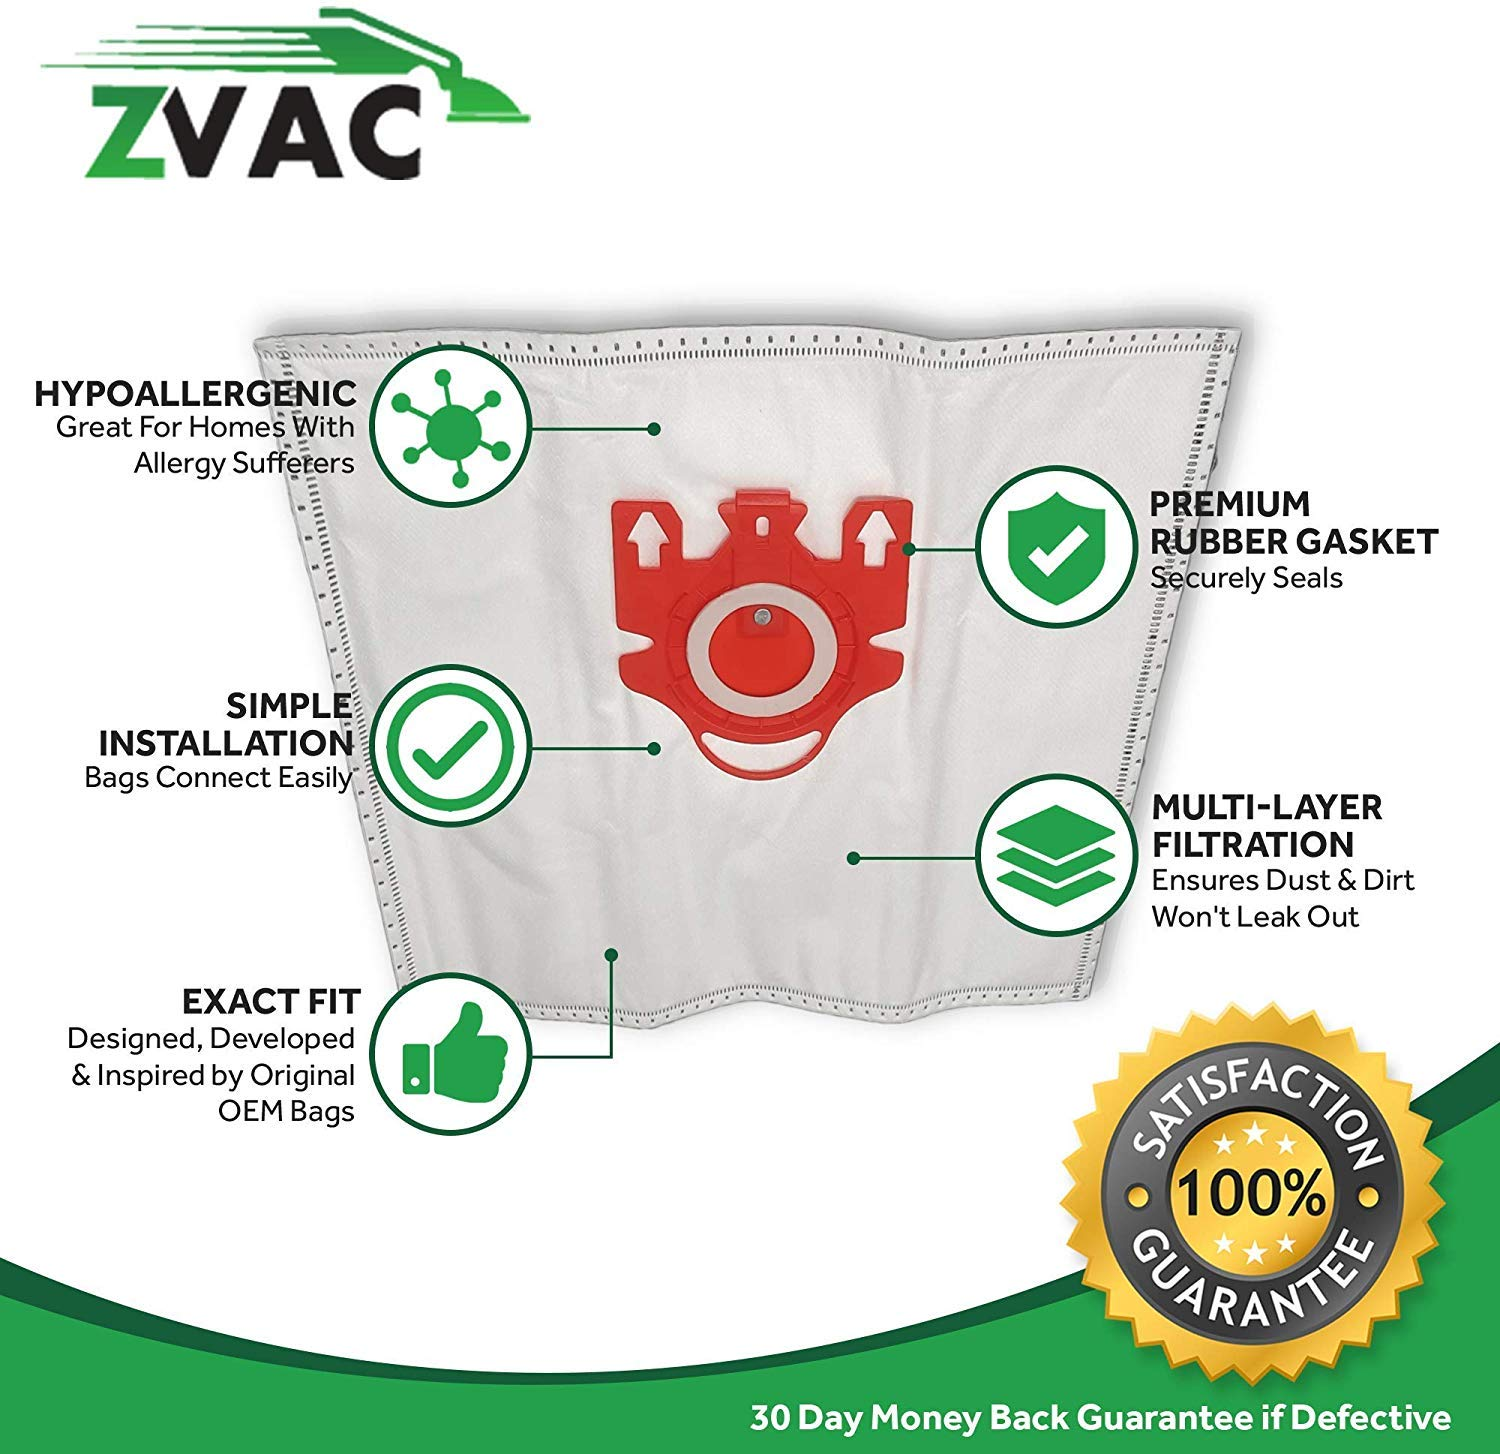 ZVac FJM Miele Replacement Vacuum Bags Multi-Ply Type Bag Set 10-Piece Micro-Filtration 4 HEPA-Style Media Filters Stay Sealed Air-Cleaning Efficiency Quick and Easy Connection Snug Fit